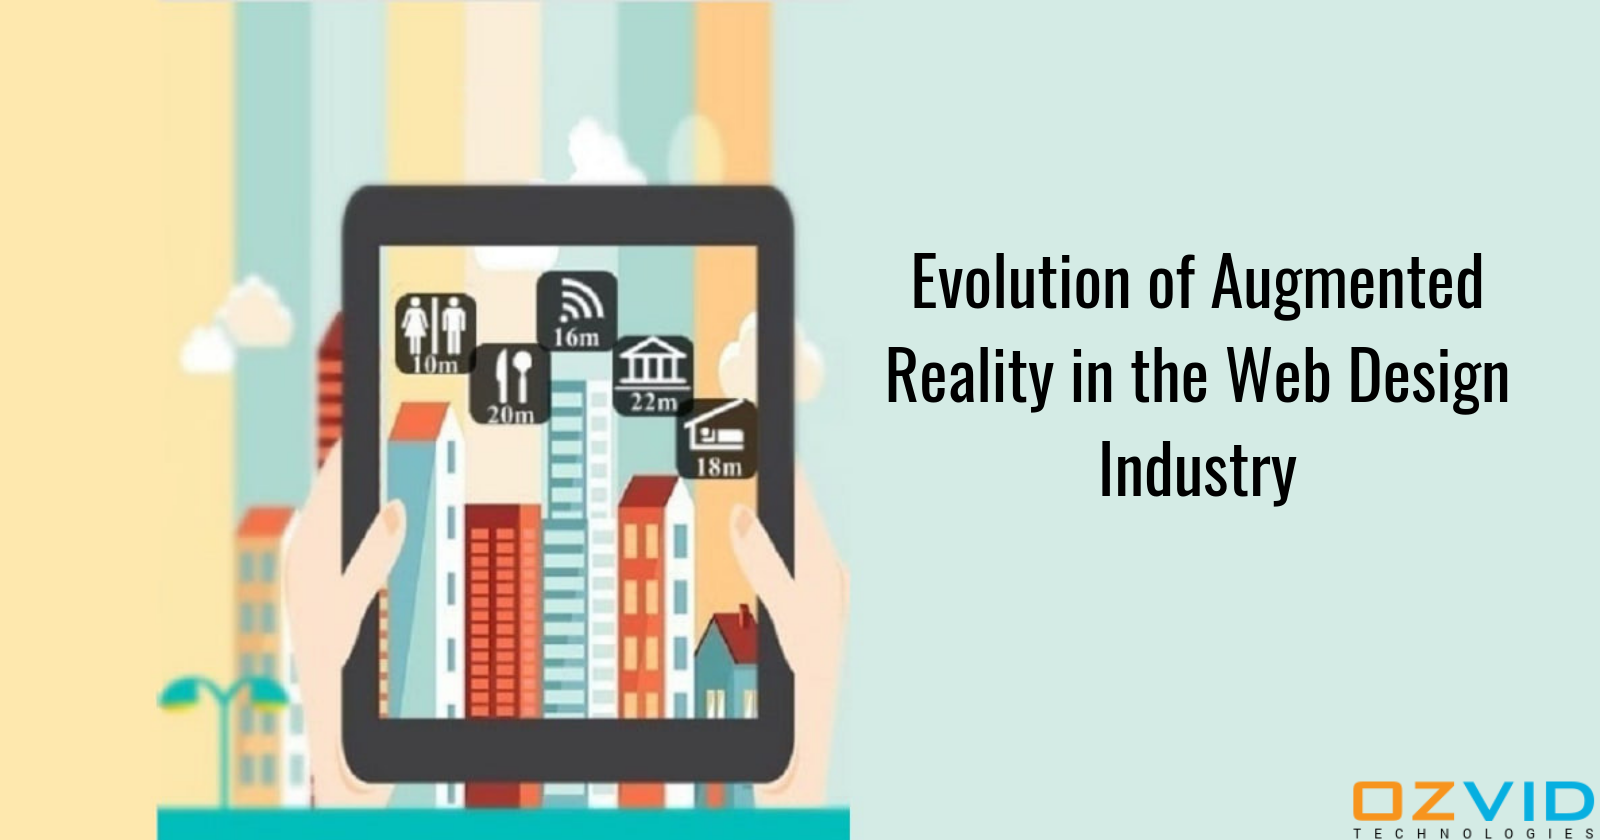 How Augmented Reality Will Transform the Web Design Industry